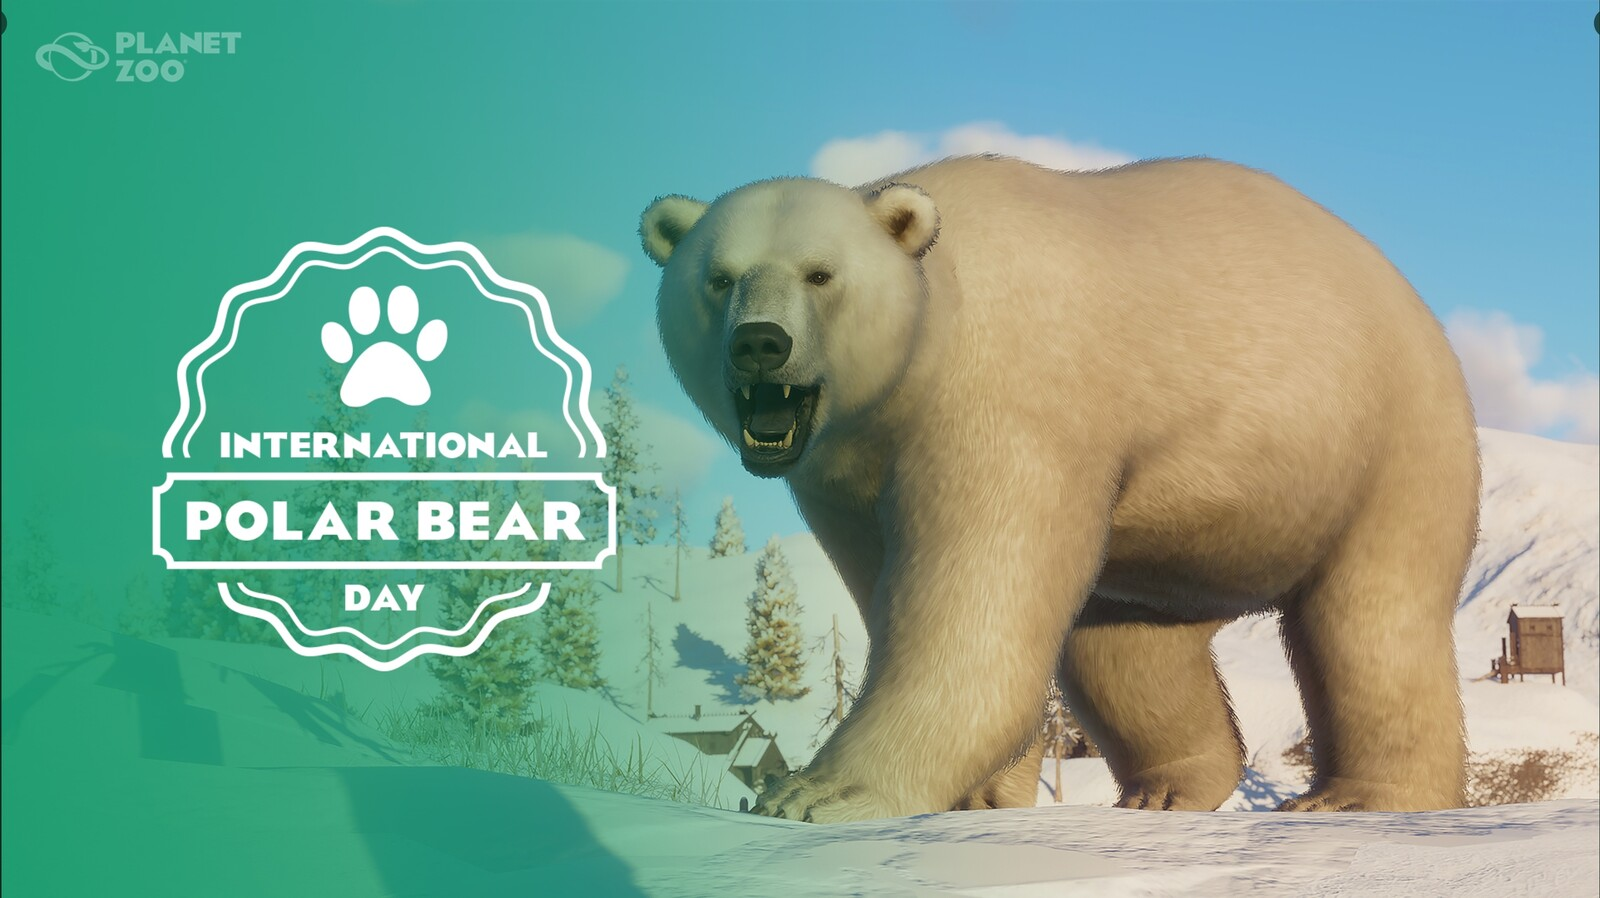 Planet Zoo - National Polar Bear Day